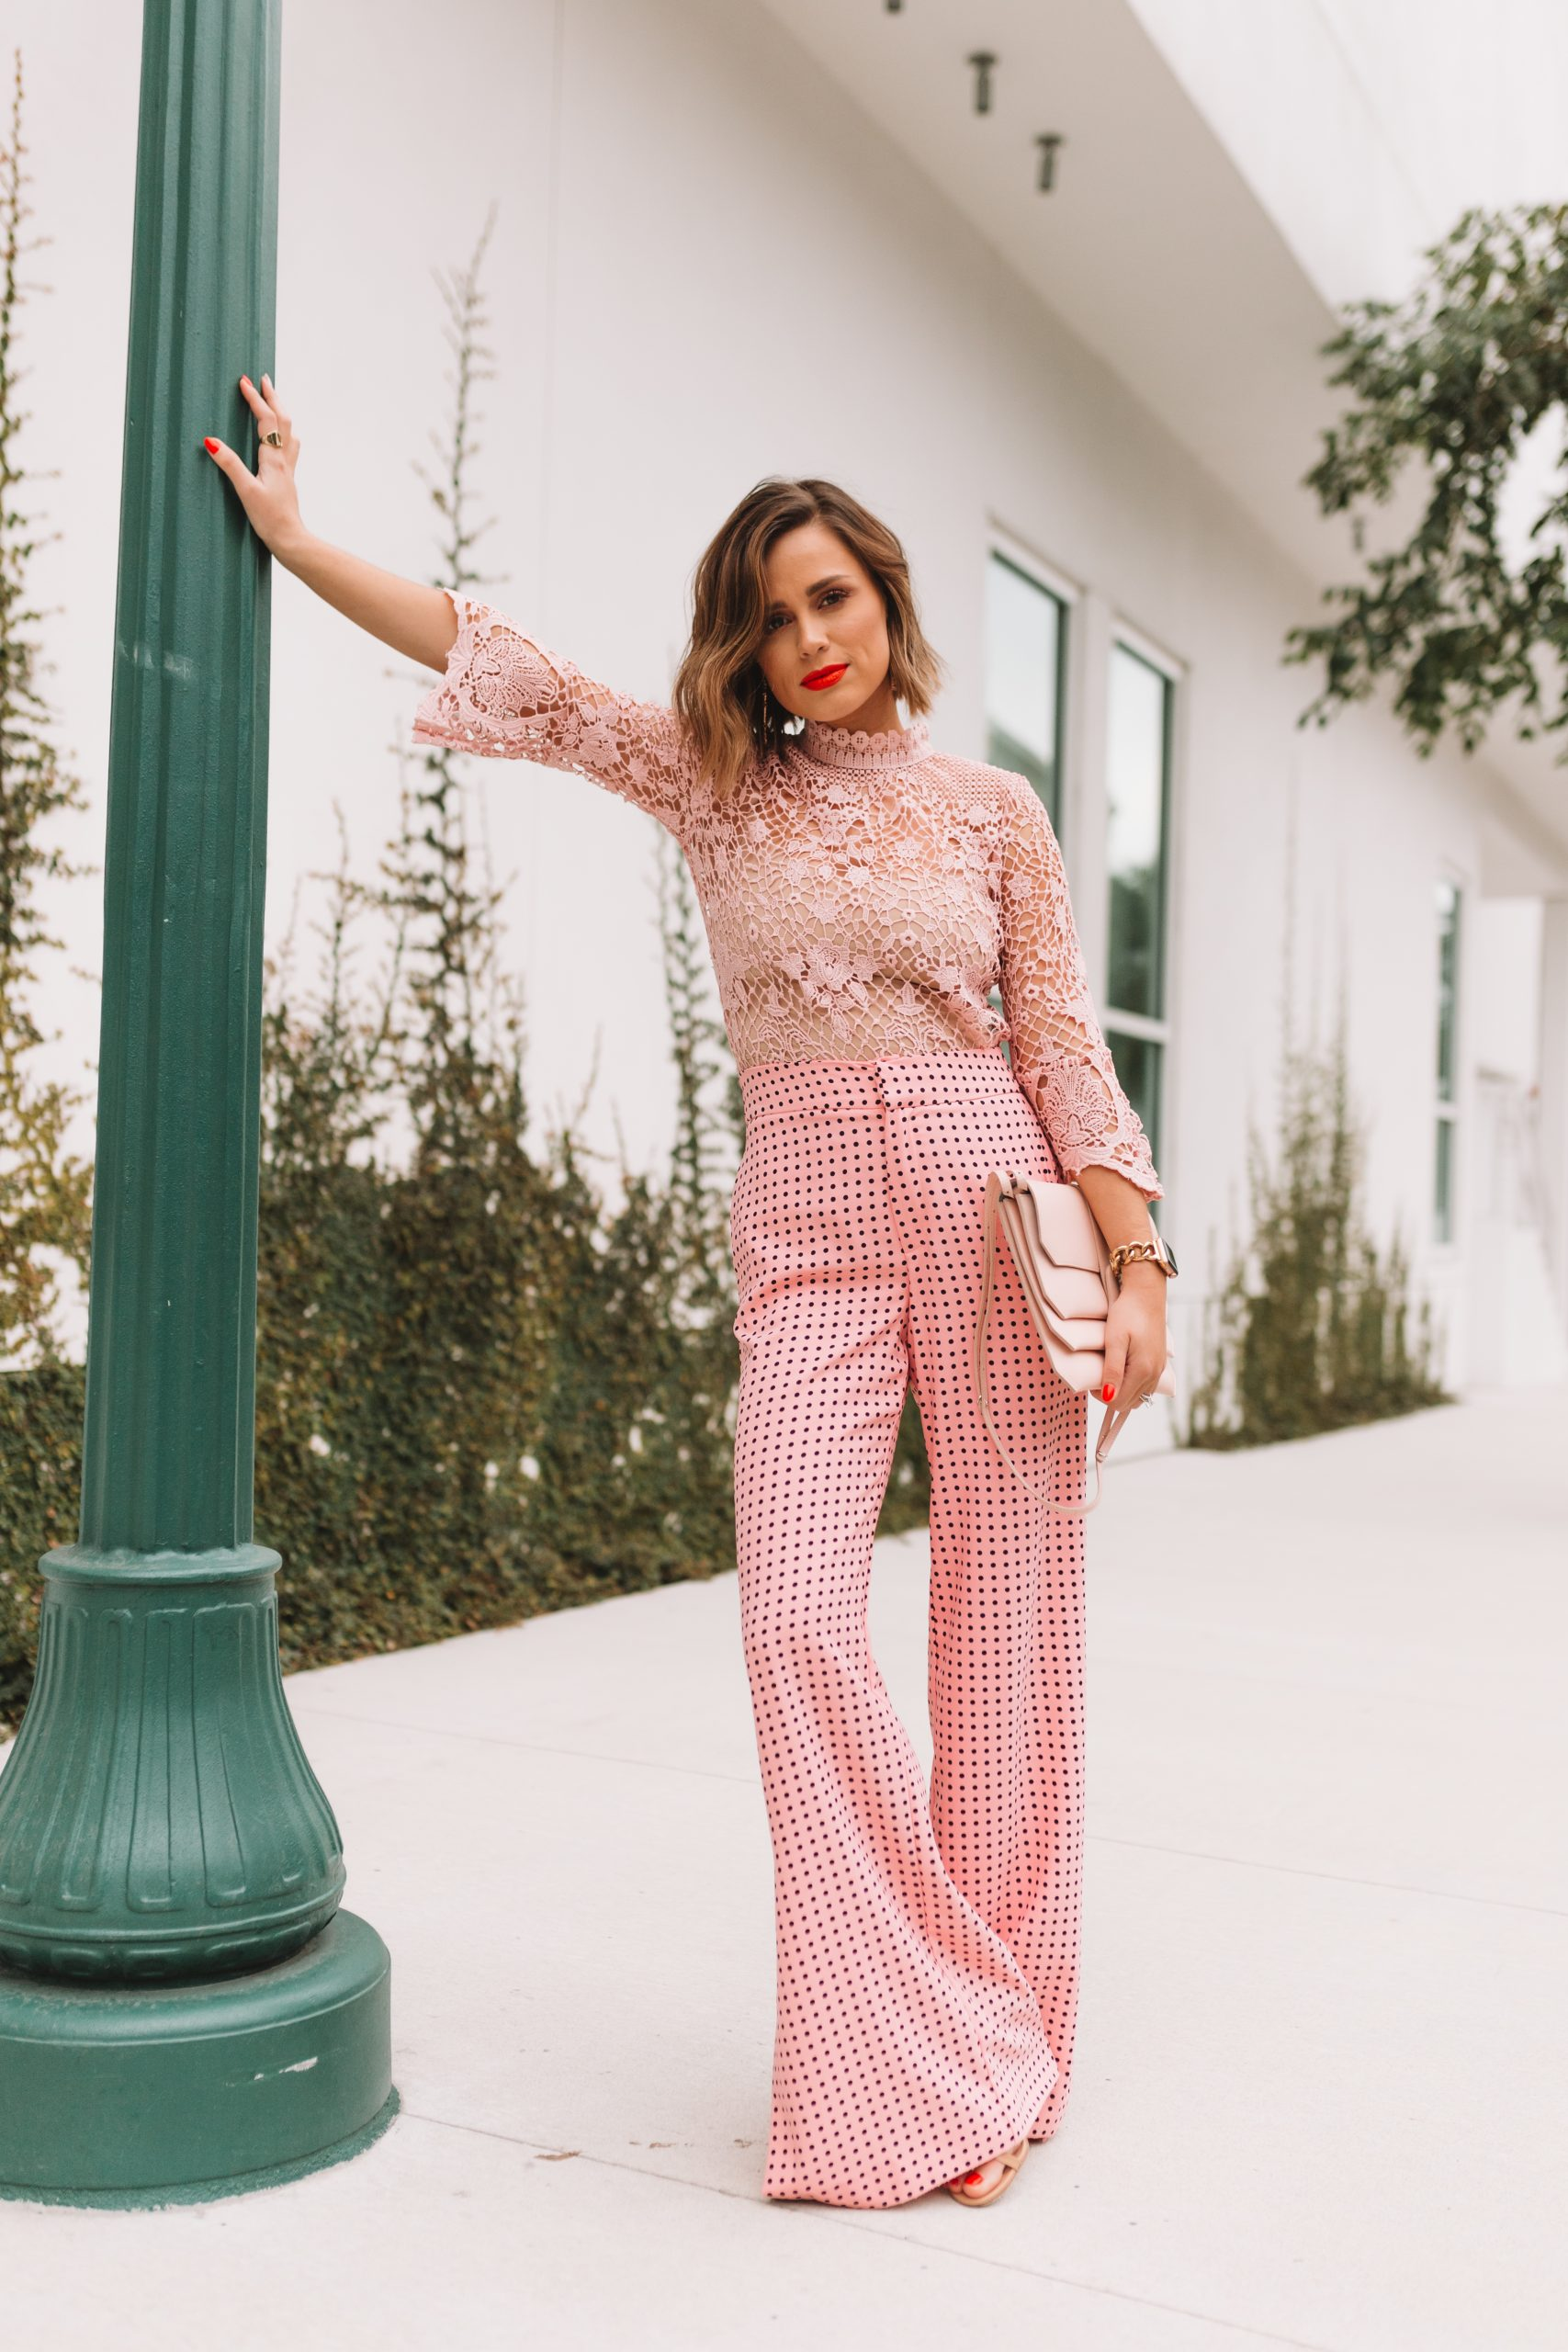 Houston fashion blogger Elly Brown wears a pink lace top and pink polka dot trousers for a feminine outfit